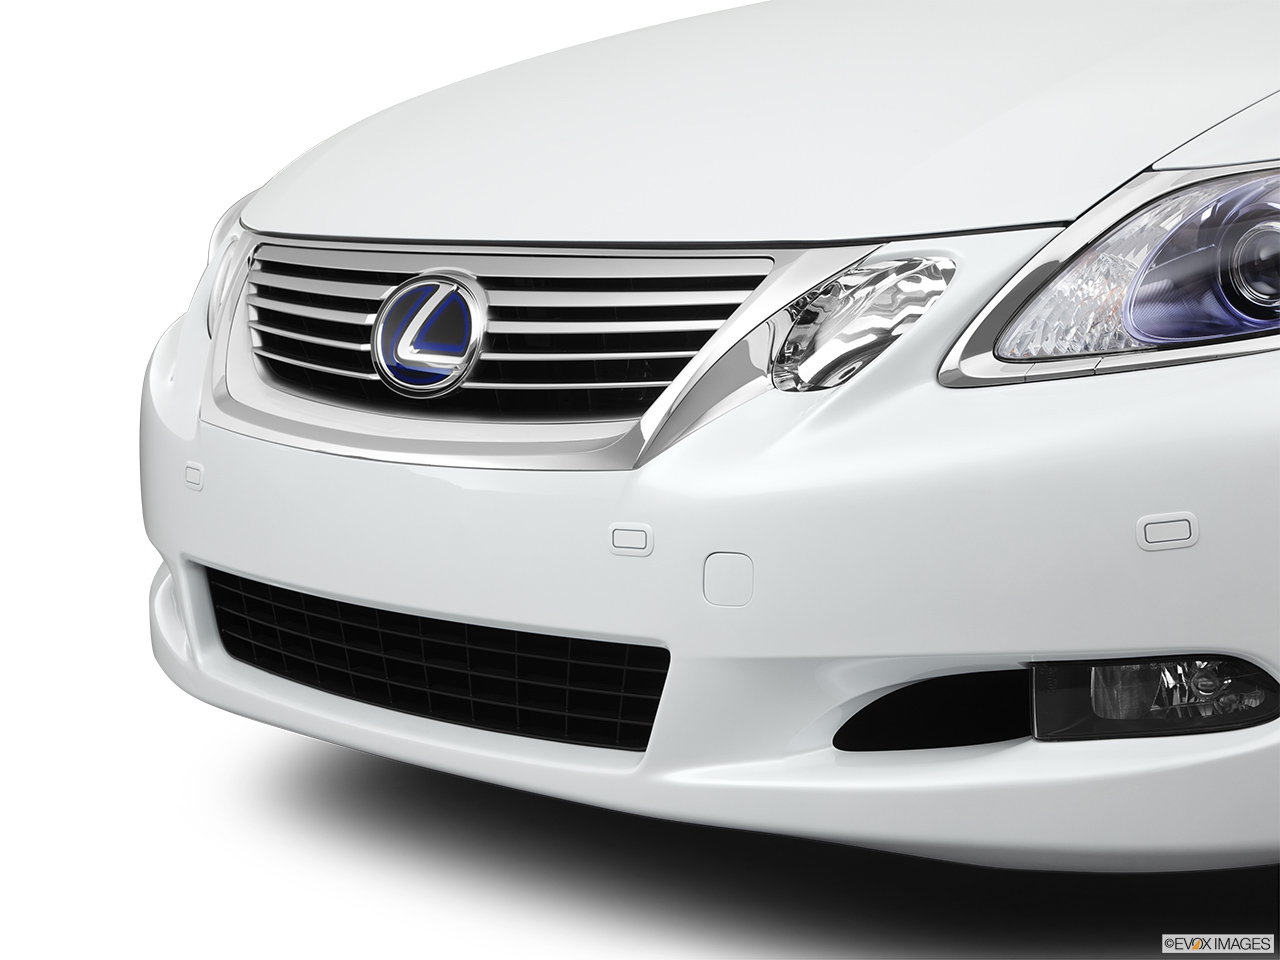 2011 Lexus GS Hybrid GS450h Close up of Grill.